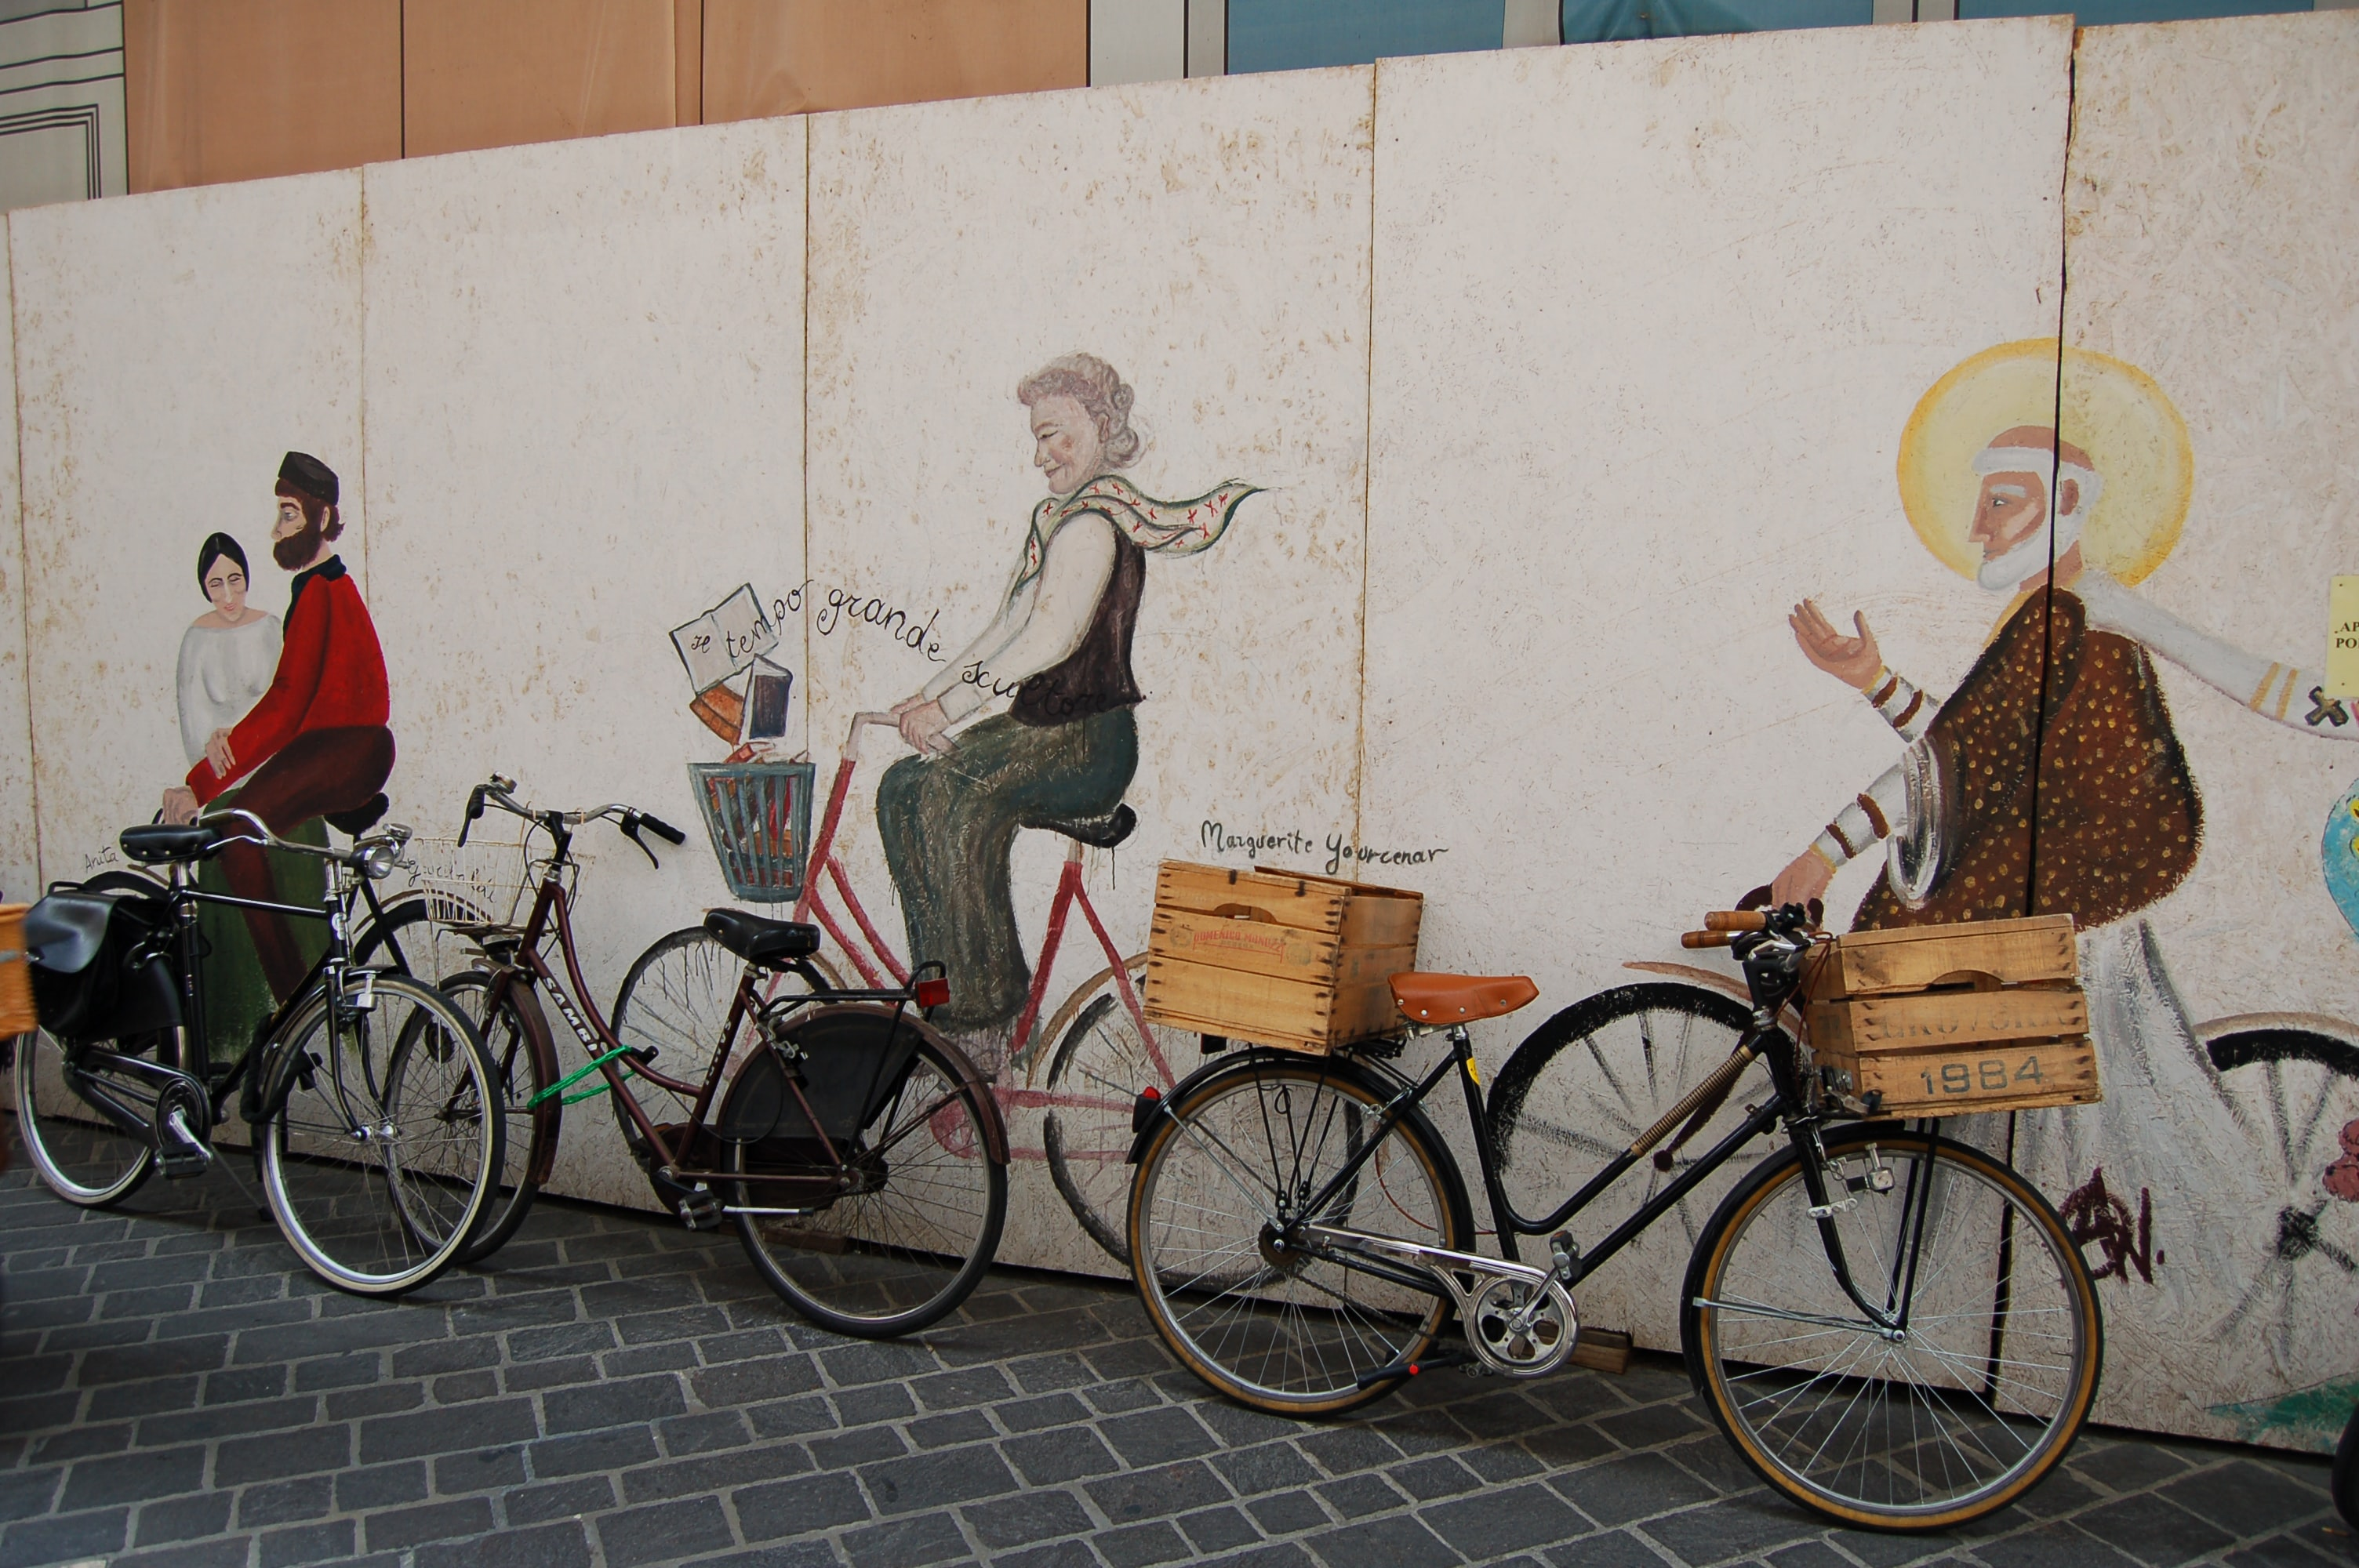 An illusion graffiti painting of people sitting on a wall, with real bikes lined up to look like they're riding them.